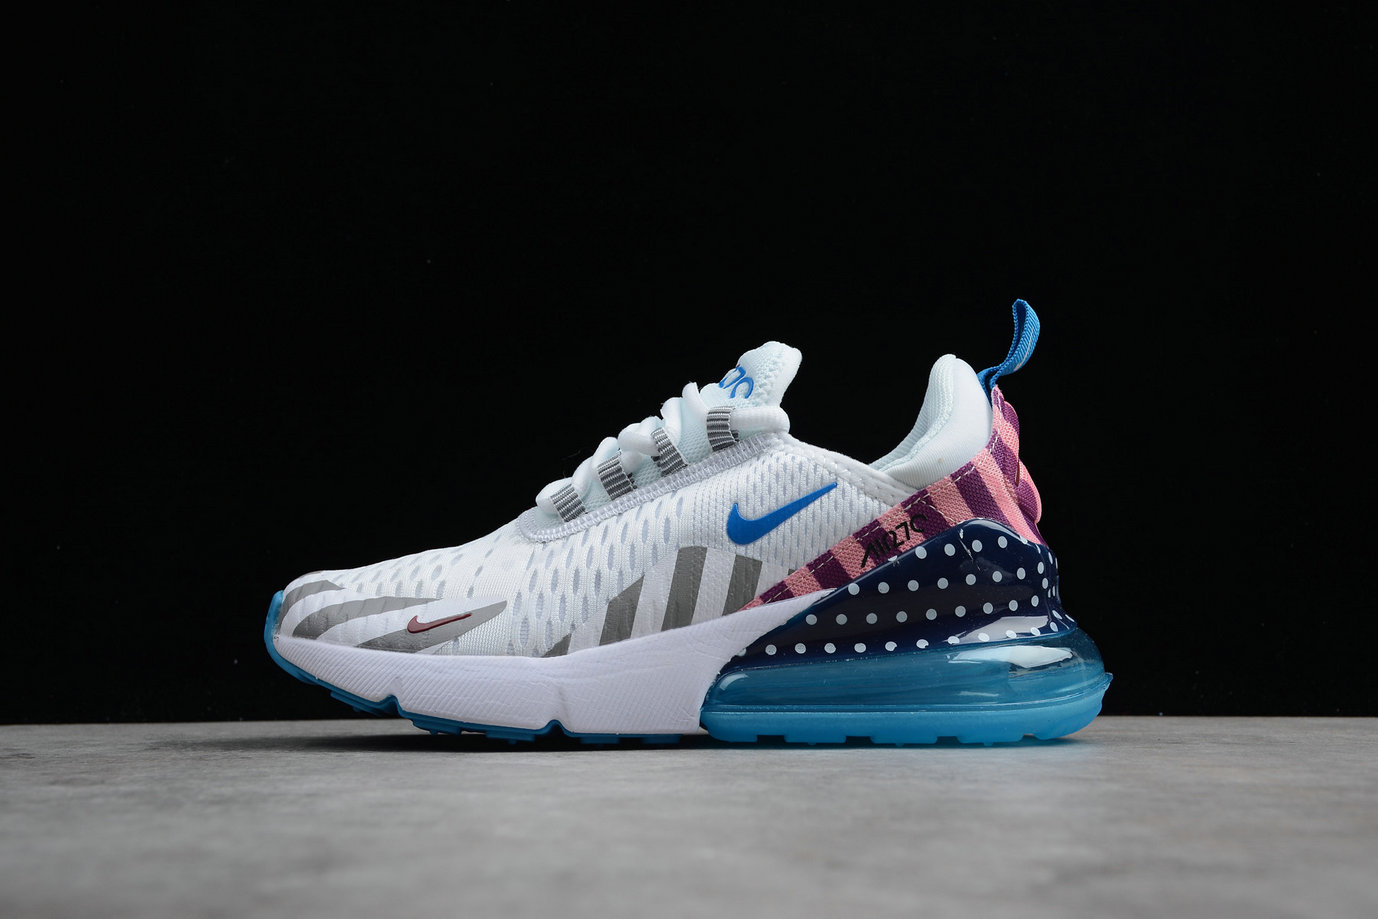 Cheap Wholesale Nike Air Max 270 AH6789-020 Mens Running Shoes White Blue Pink- www.wholesaleflyknit.com